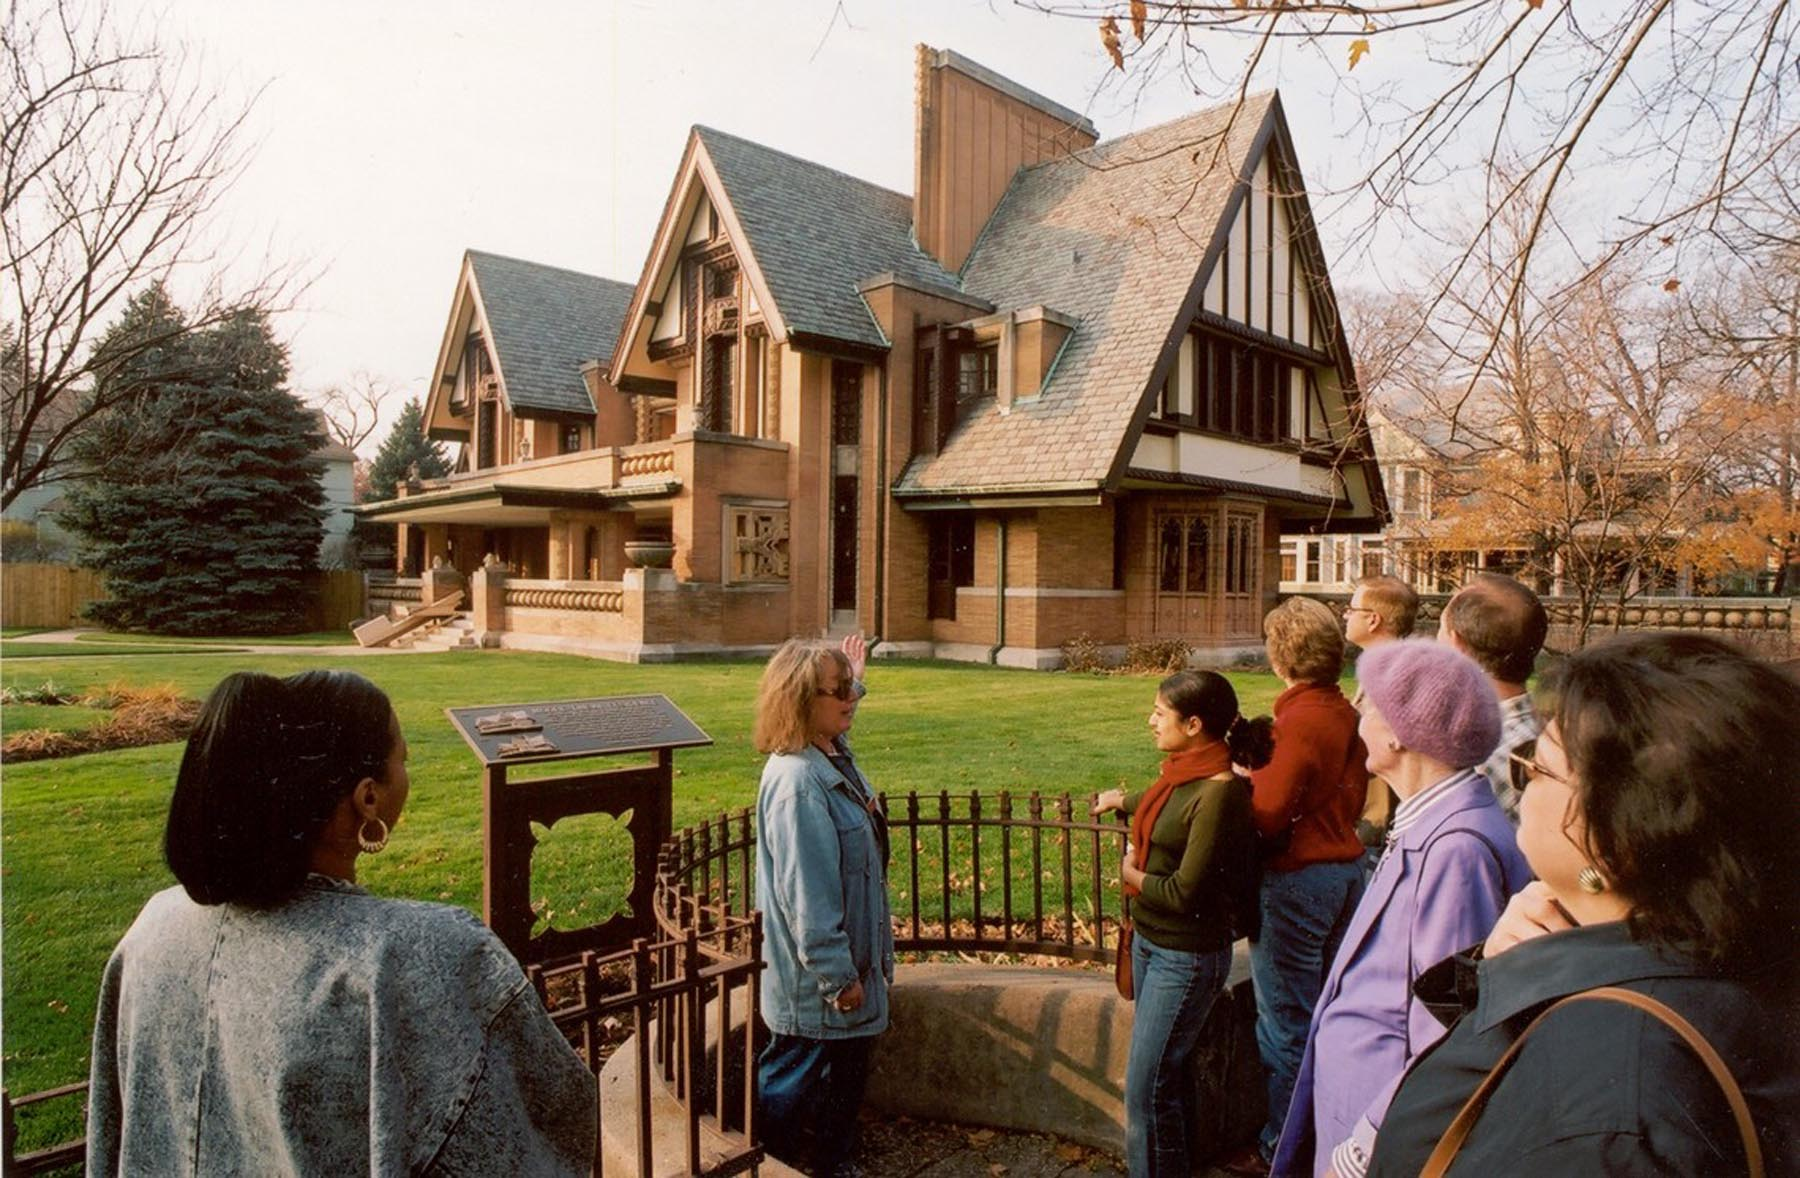 A guide talks with visitors outside the Nathan G. Moore House, also known as the Moore-Dugal Residence, designed by Frank Lloyd Wright. The house was built one block south of Wright's home and studio  in the Chicago suburb of Oak Park, Illinois.